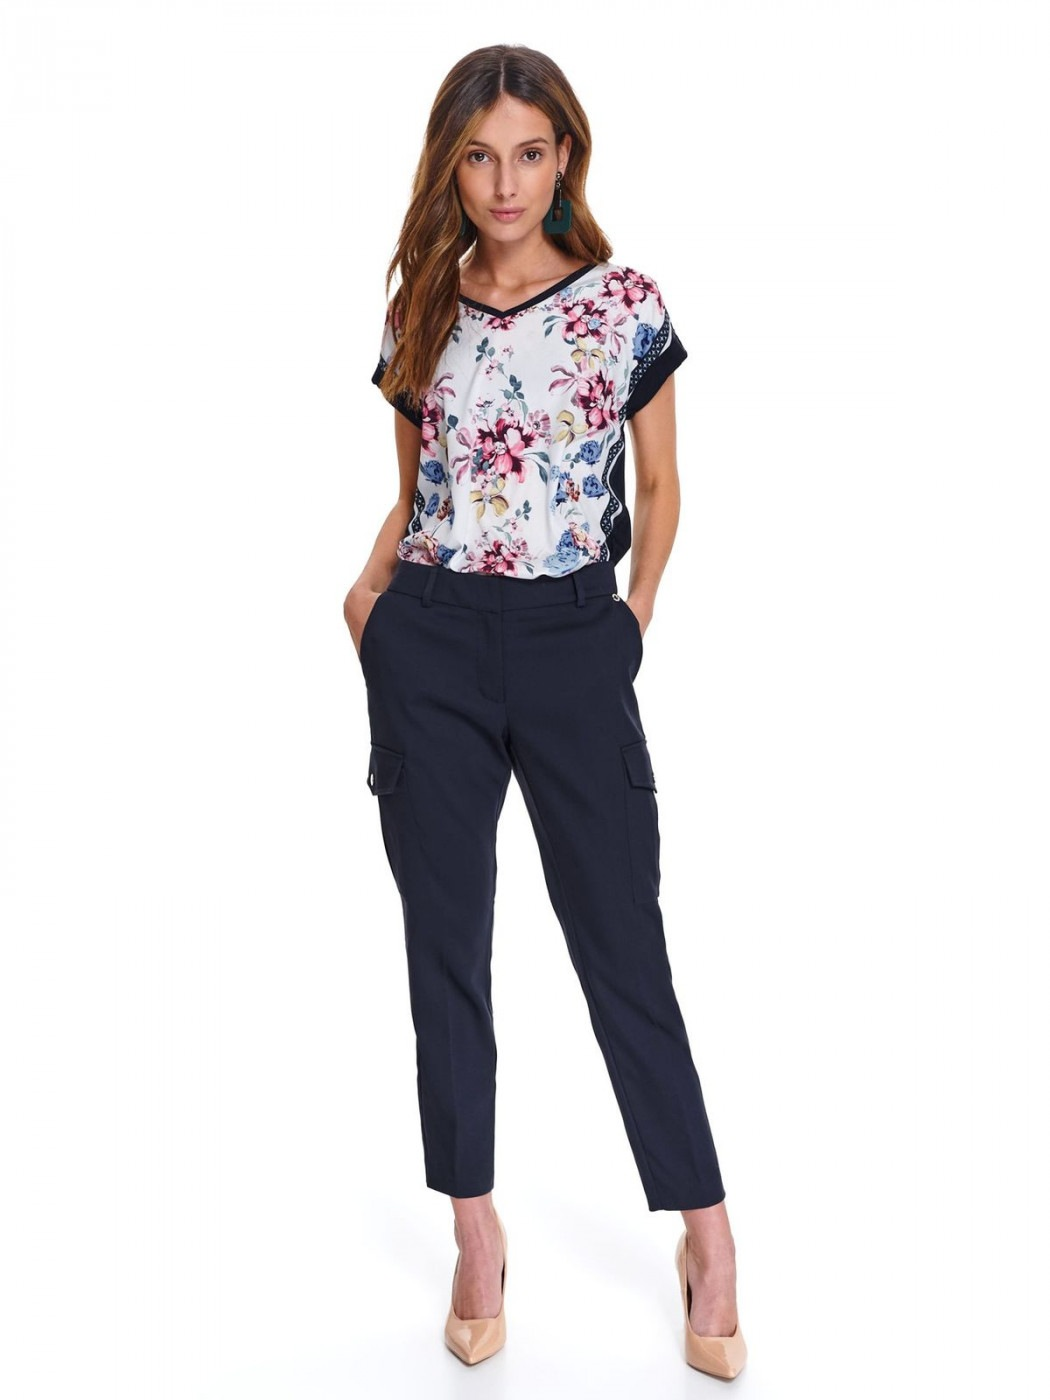 Women's Blouse Top Secret Floral Patterned